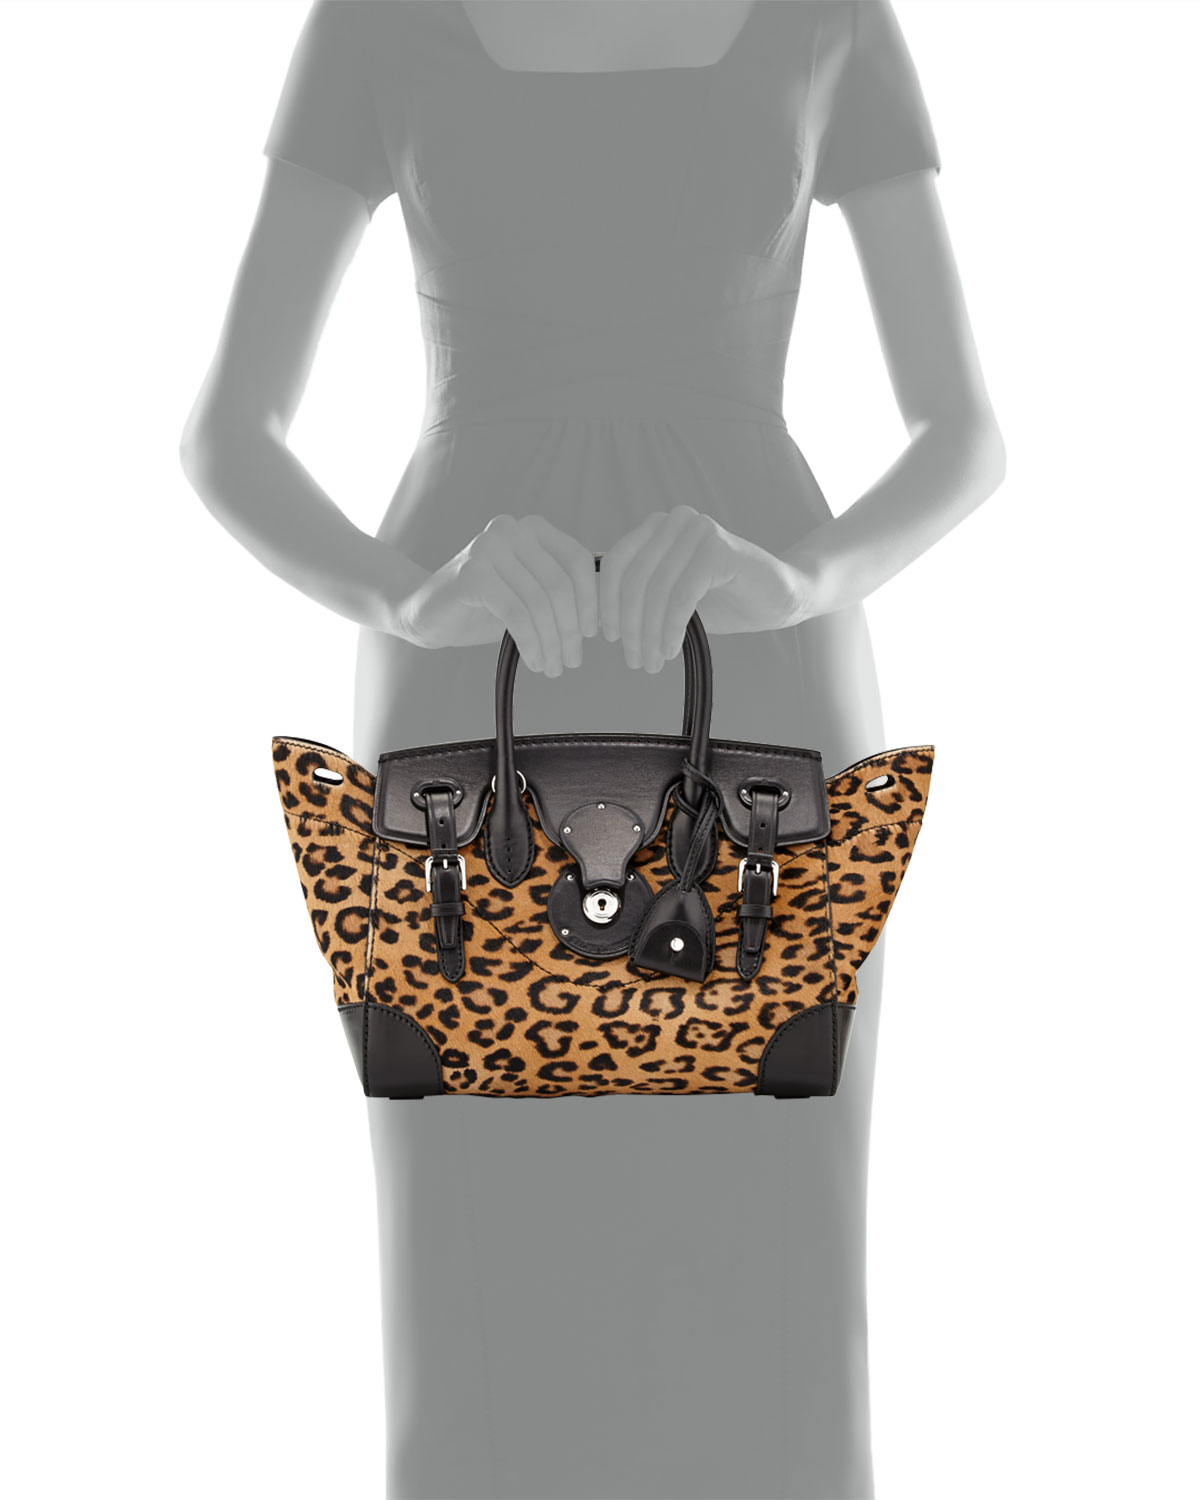 2b266ac980 Lyst - Ralph Lauren Ricky 27 Leopard-print Calf Hair Satchel Bag in ...